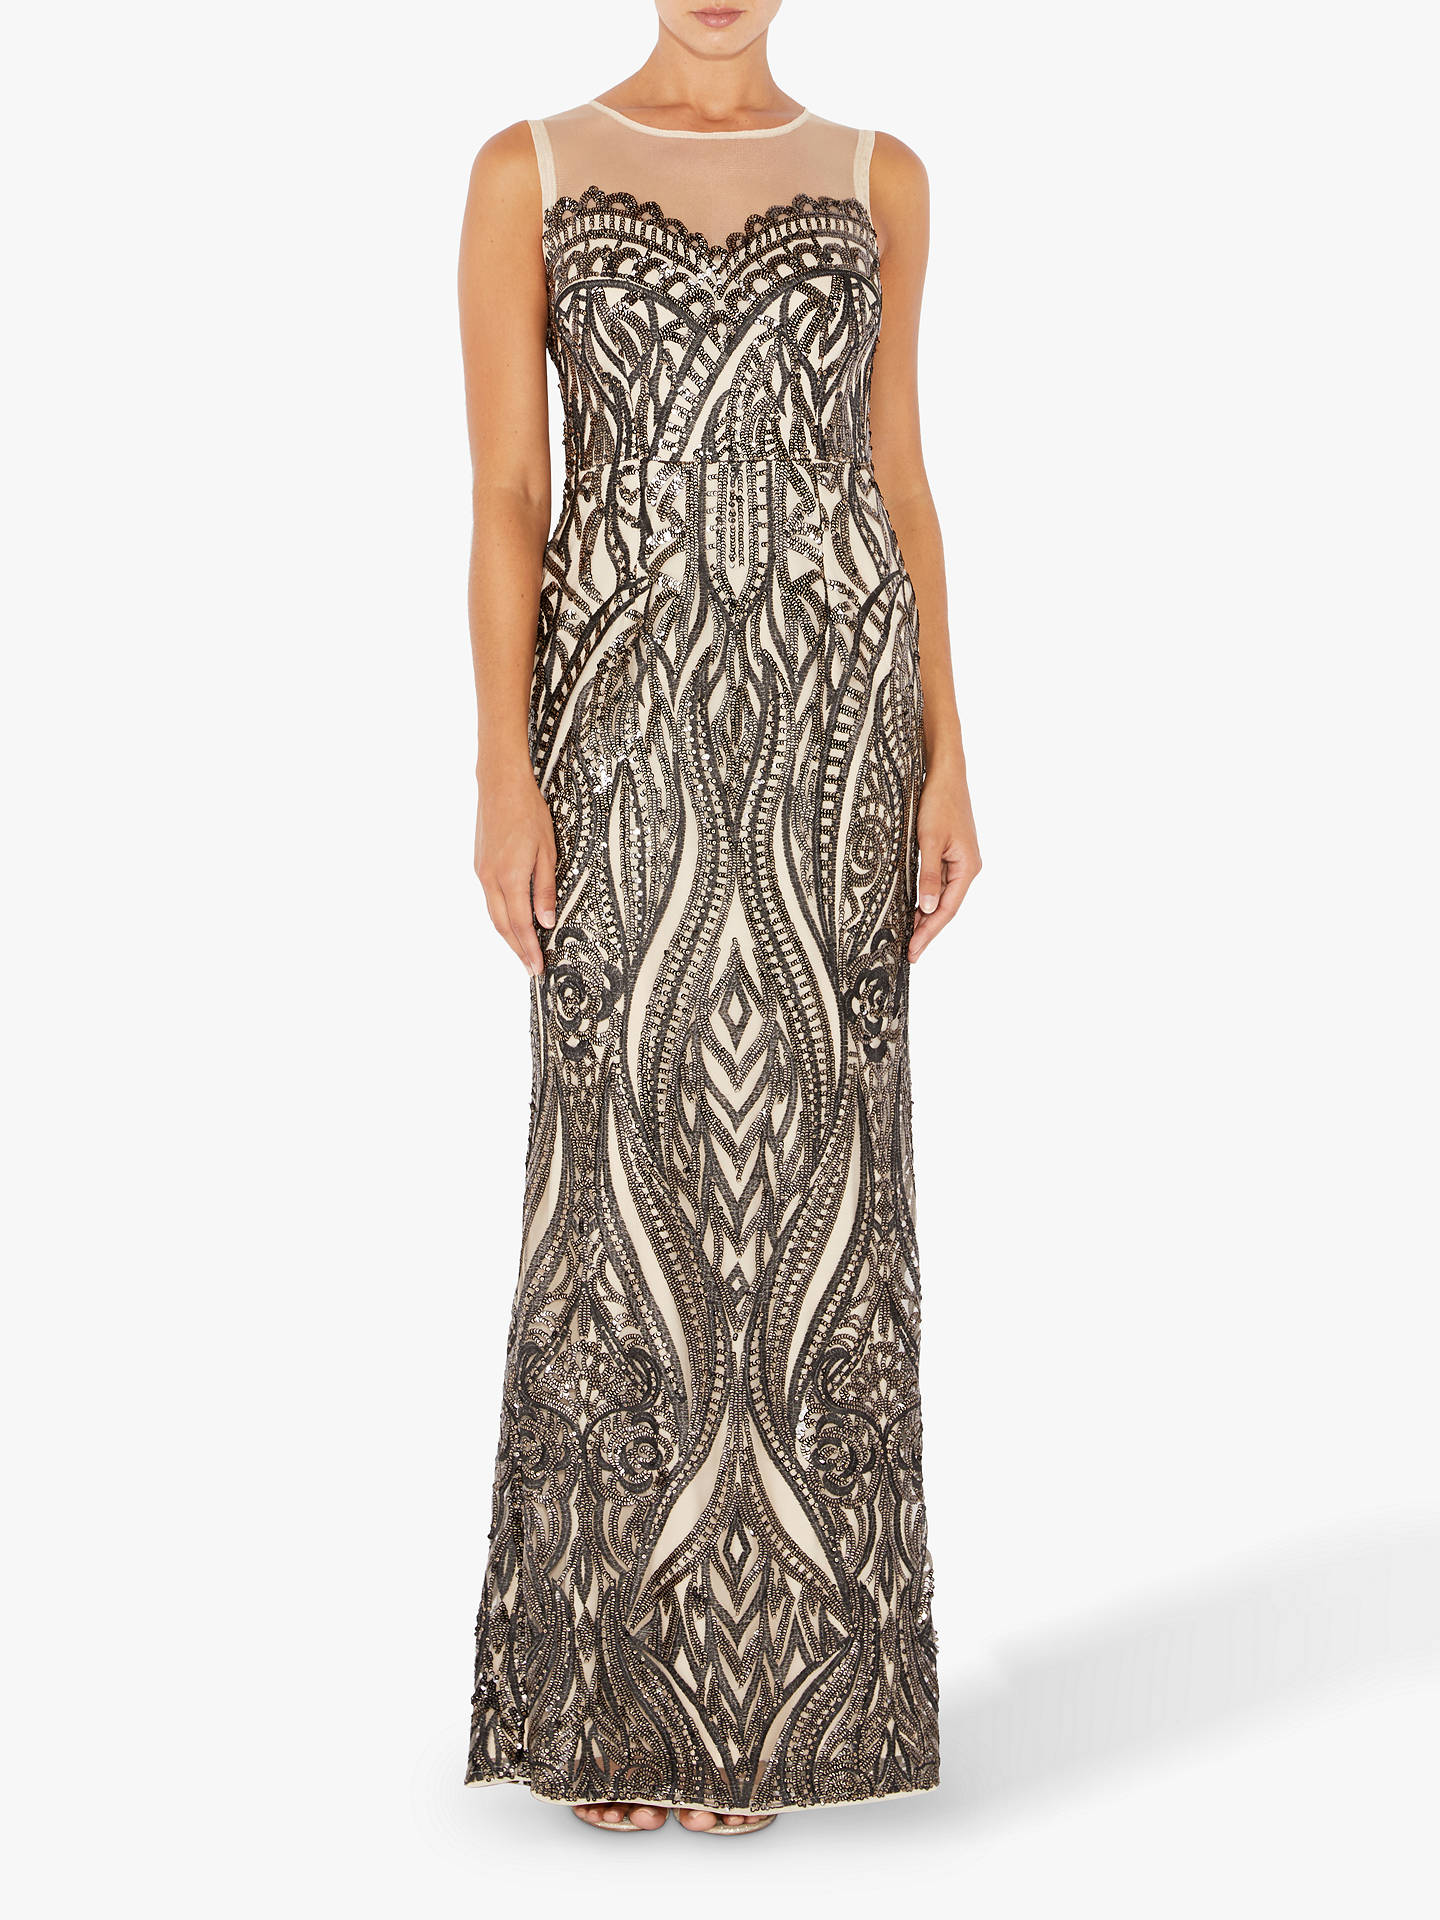 BuyAdrianna Papell Halter Sleeveless Maxi Dress, Multi, 8 Online at johnlewis.com